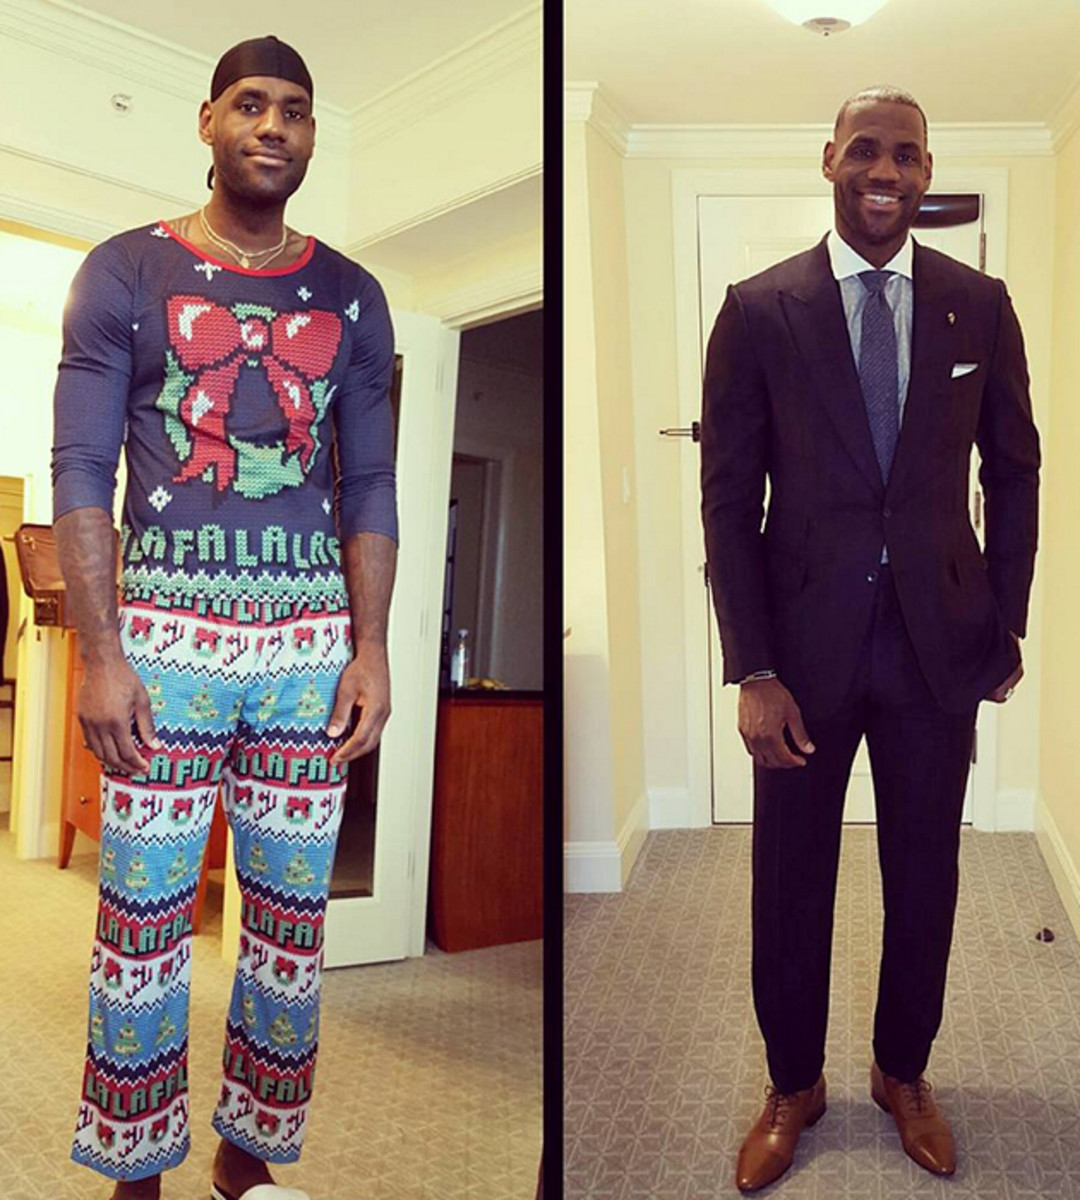 lebron-james-onesie-instagram-nba-christmas-day.jpg